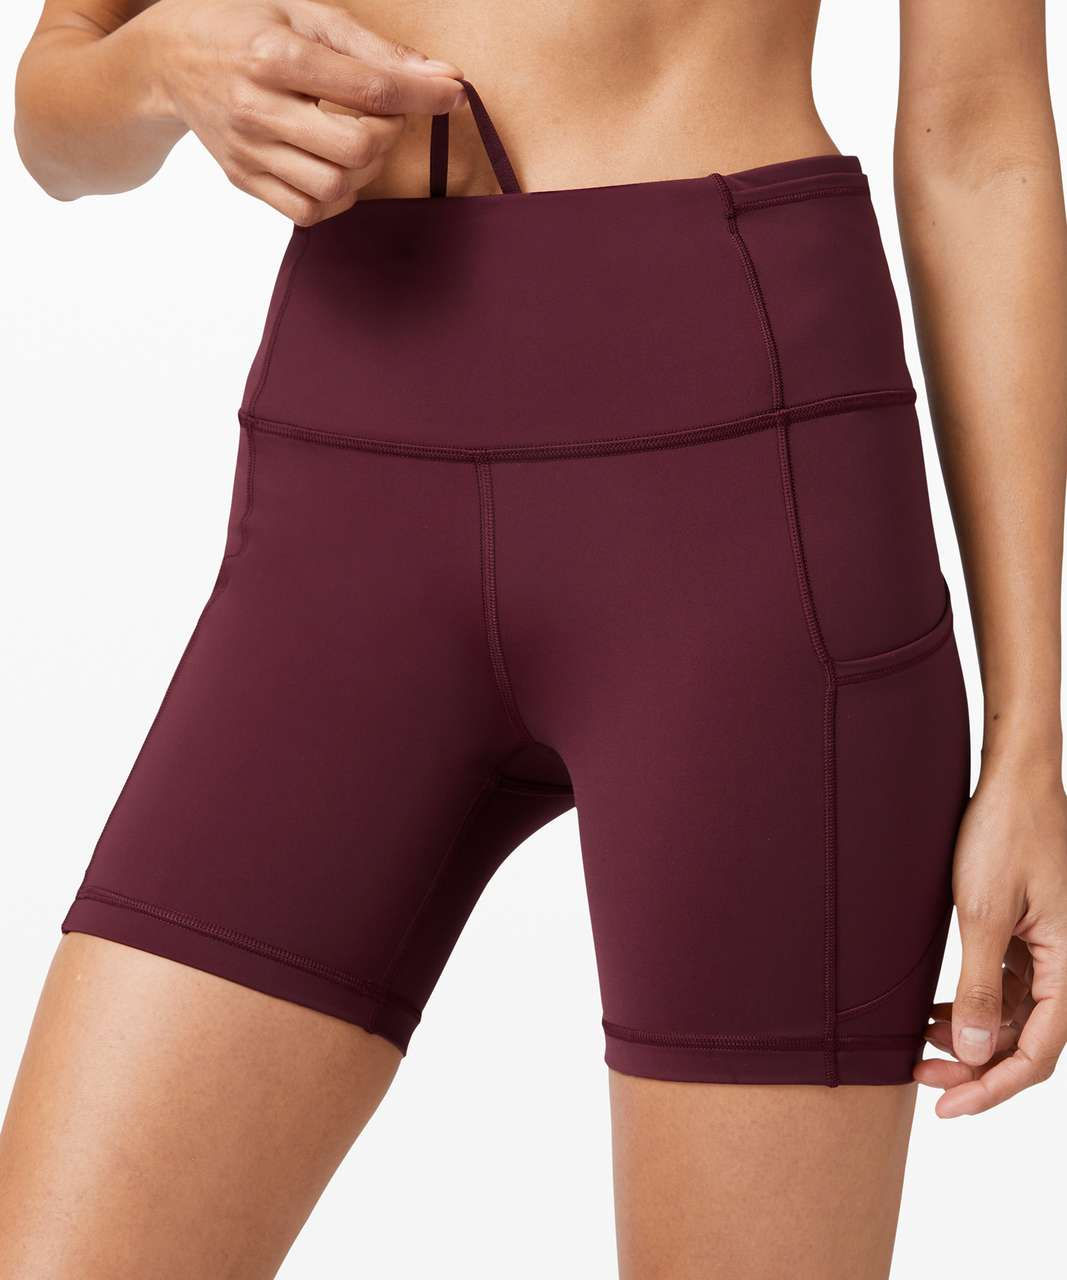 """Lululemon Fast and Free Short 6"""" *Non-Reflective - Cassis"""